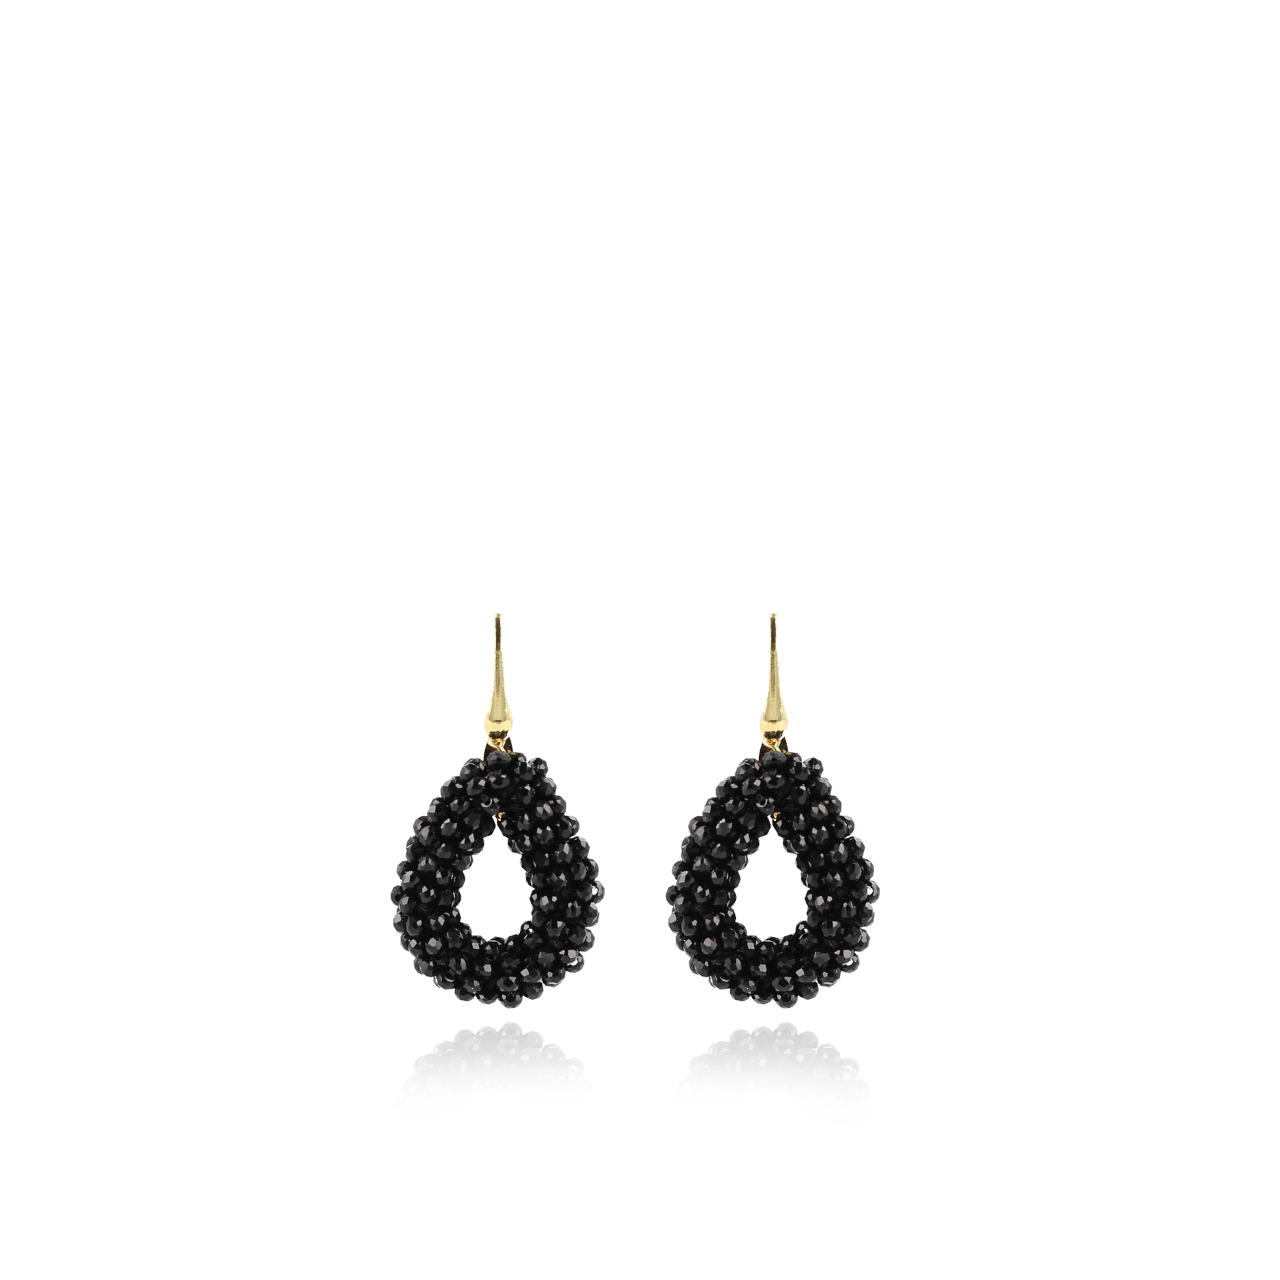 Black glassberry drop XS earrings silver